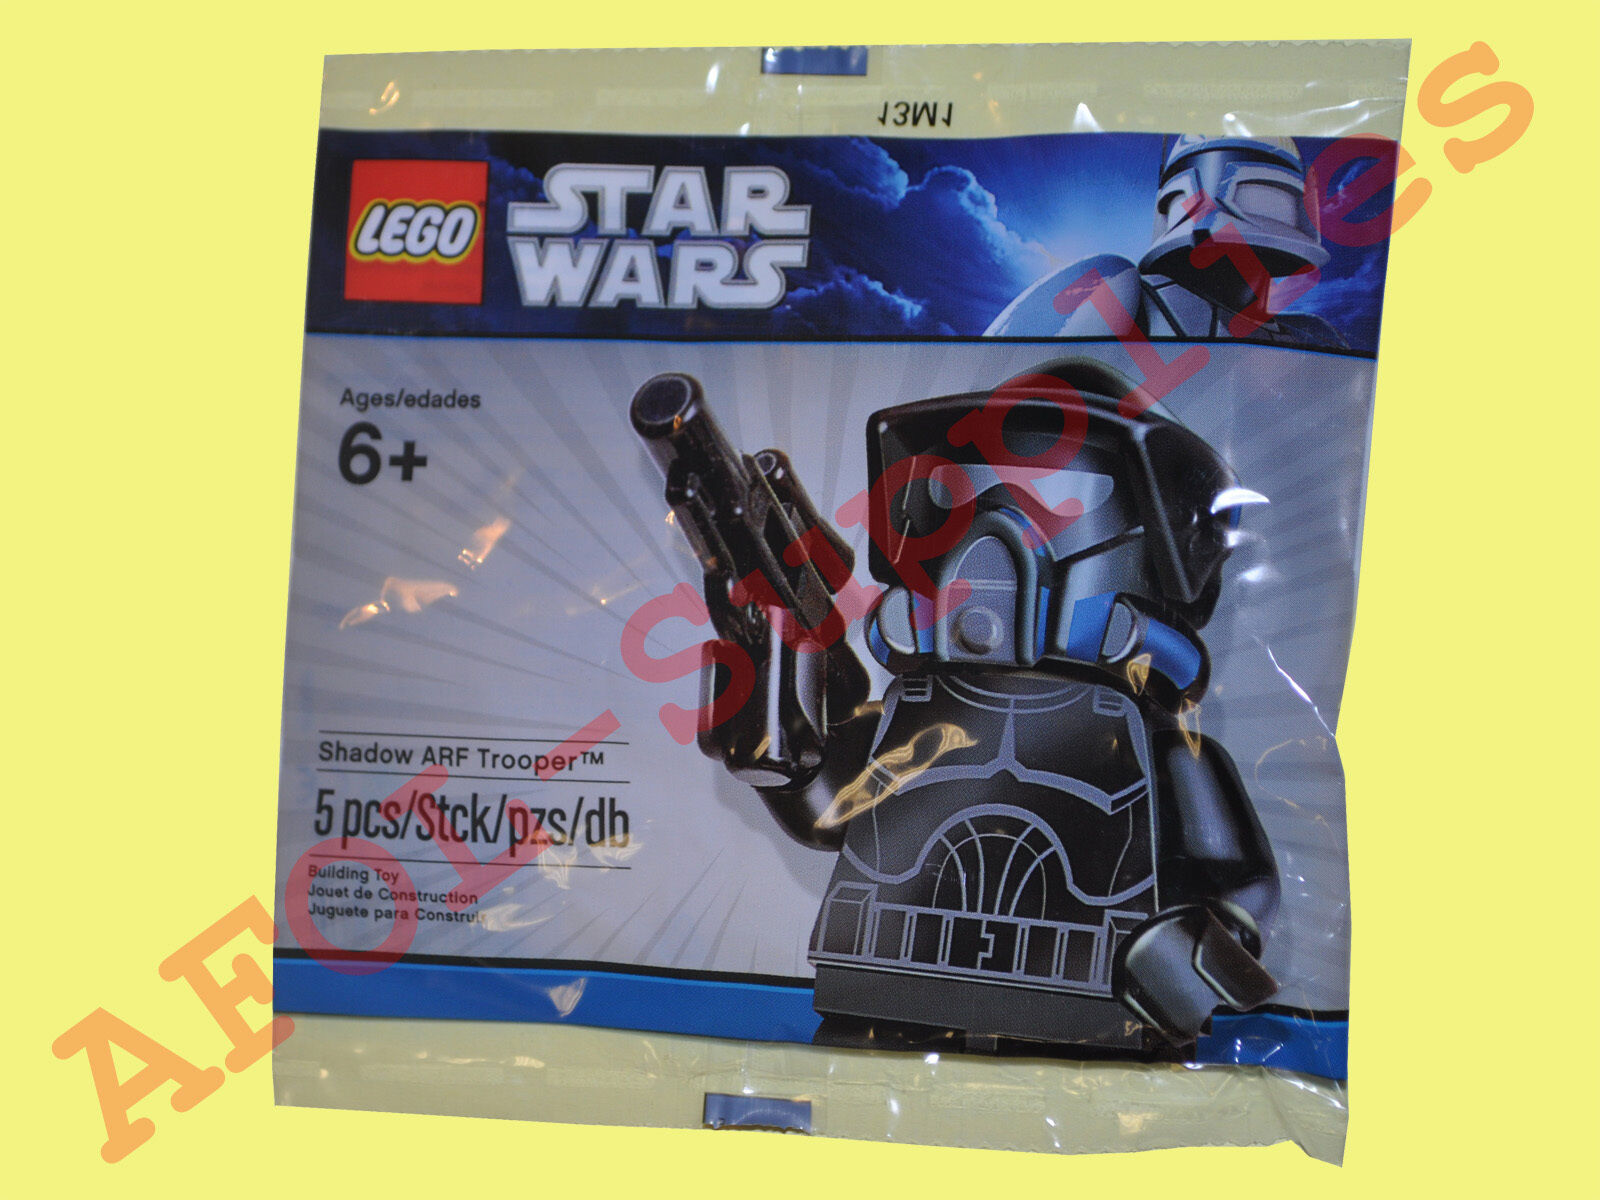 LEGO 4649858 star wars personnage shadow der soldat Limited Edition personnage wars polybag f531cd